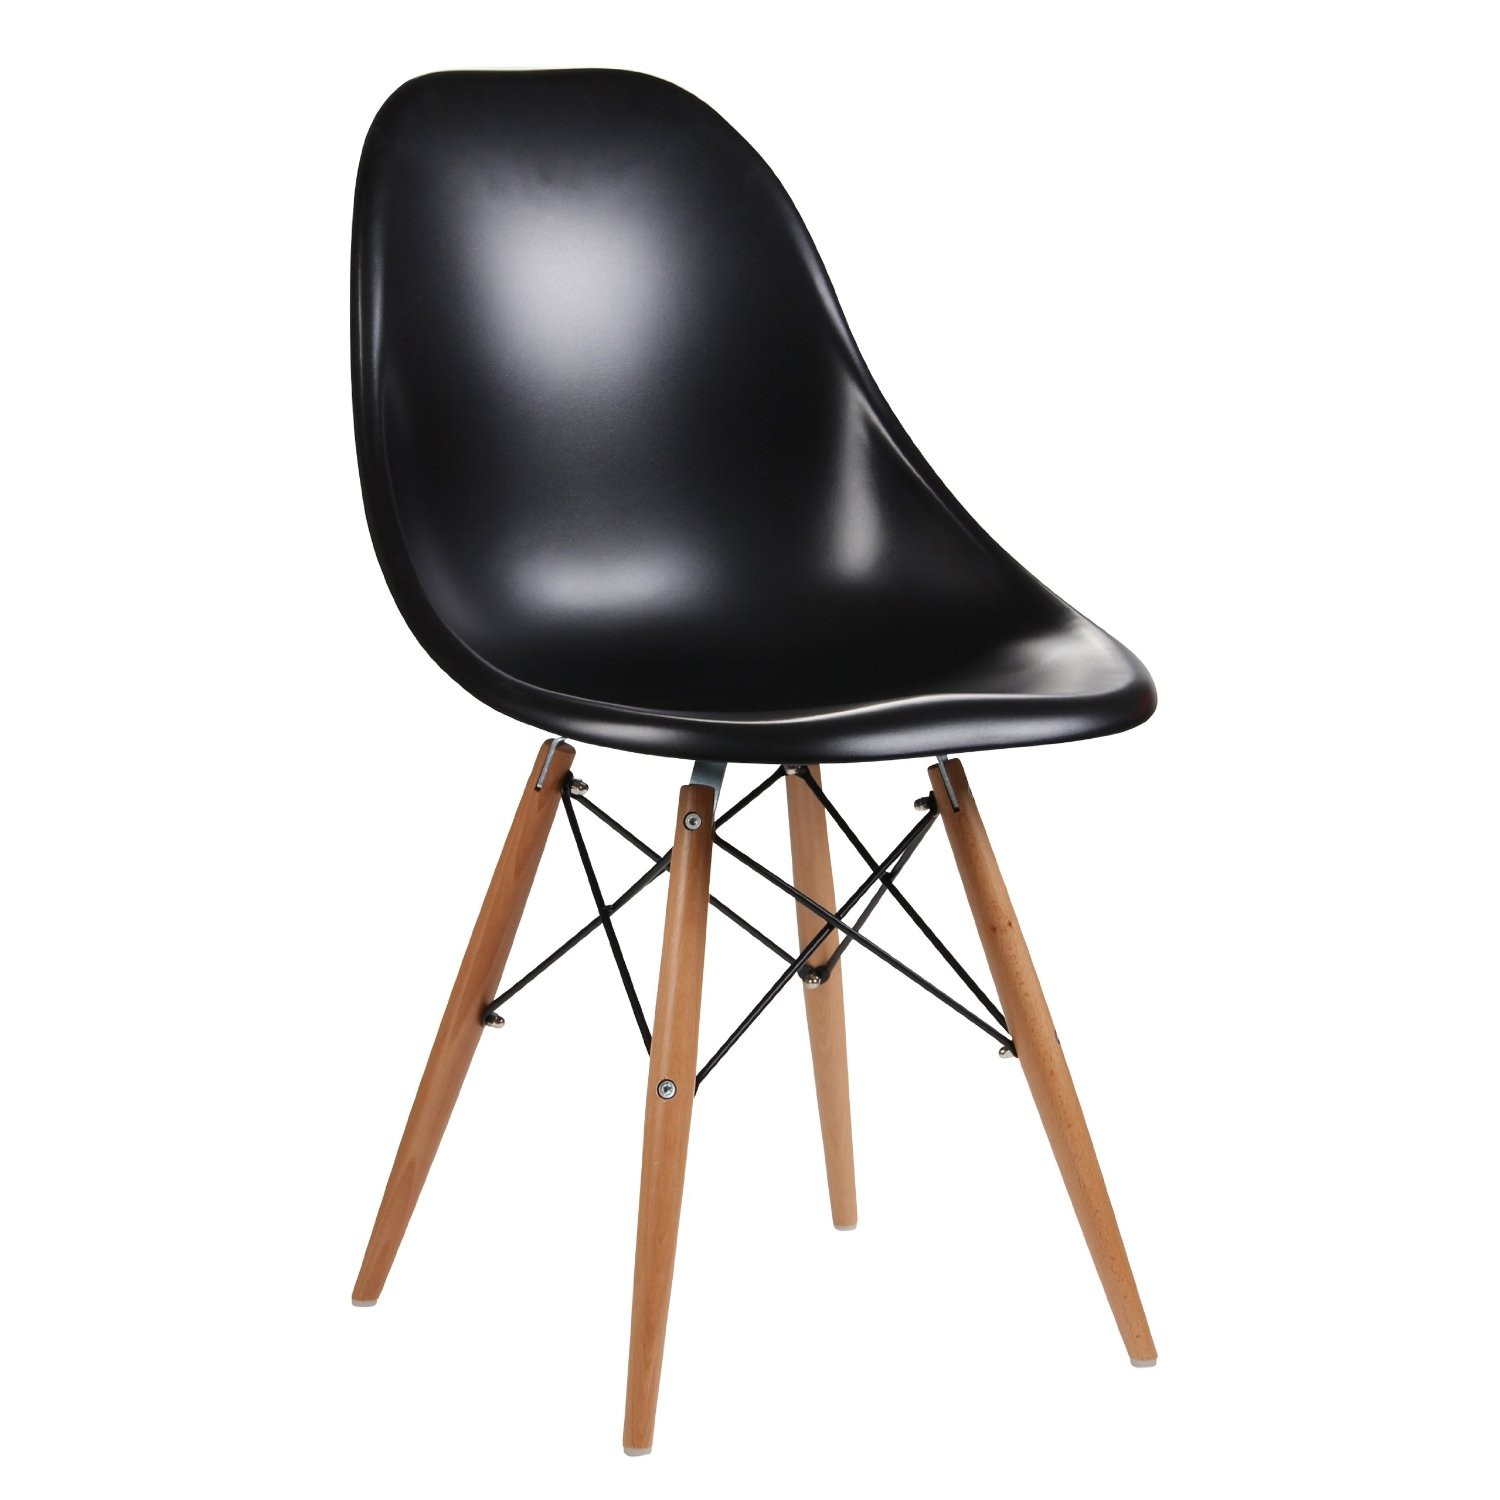 eames leather chair dining resin wicker rocking canada inspired moulded black